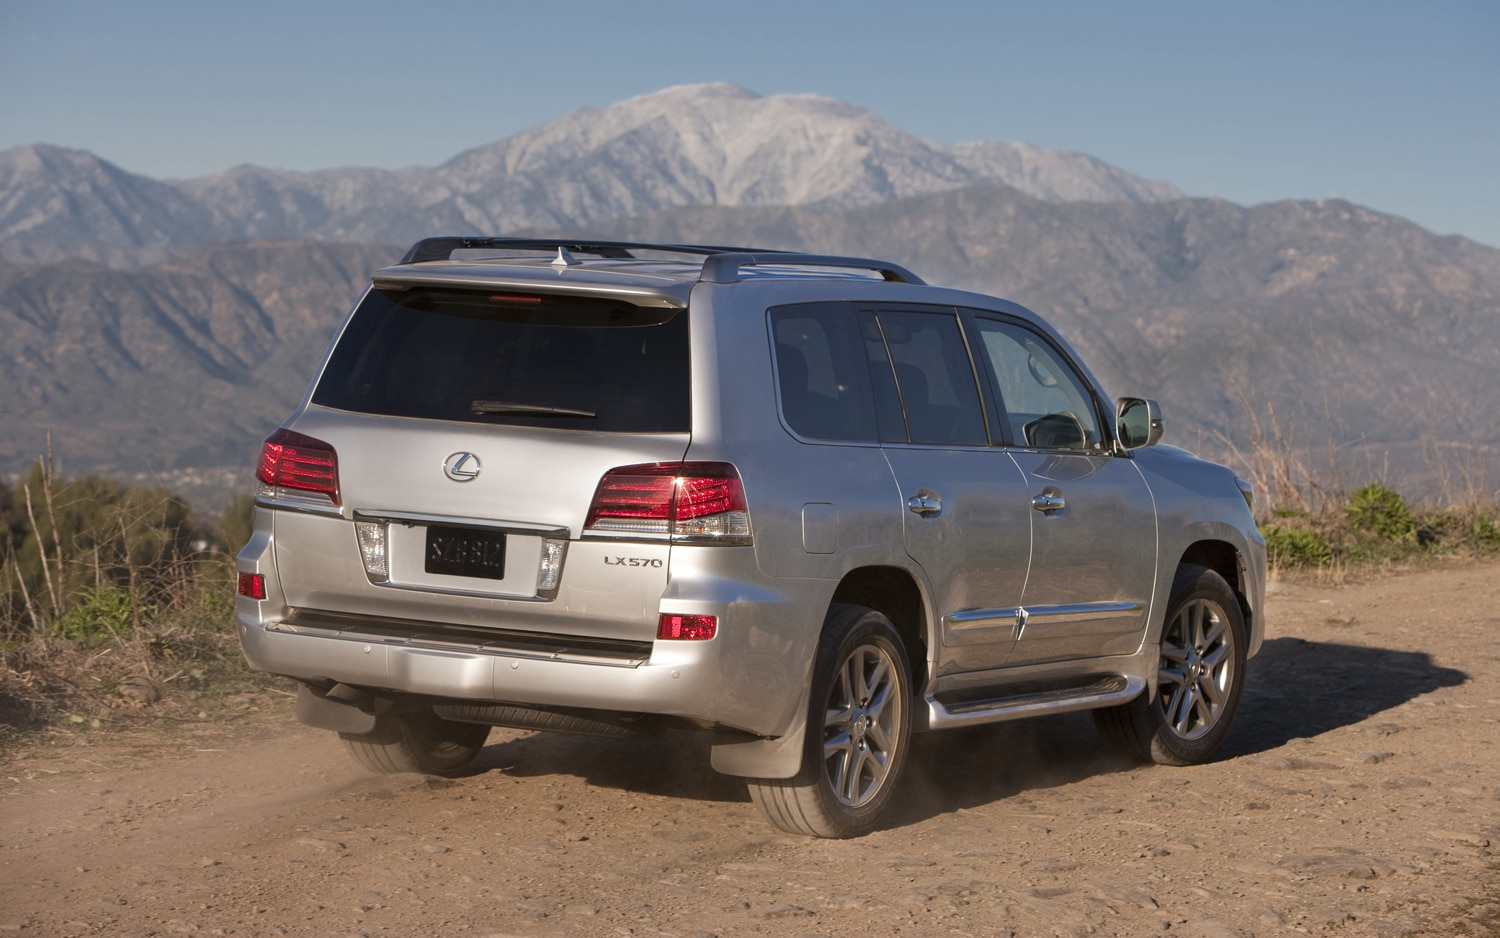 2013 Lexus LX 570 Rear View